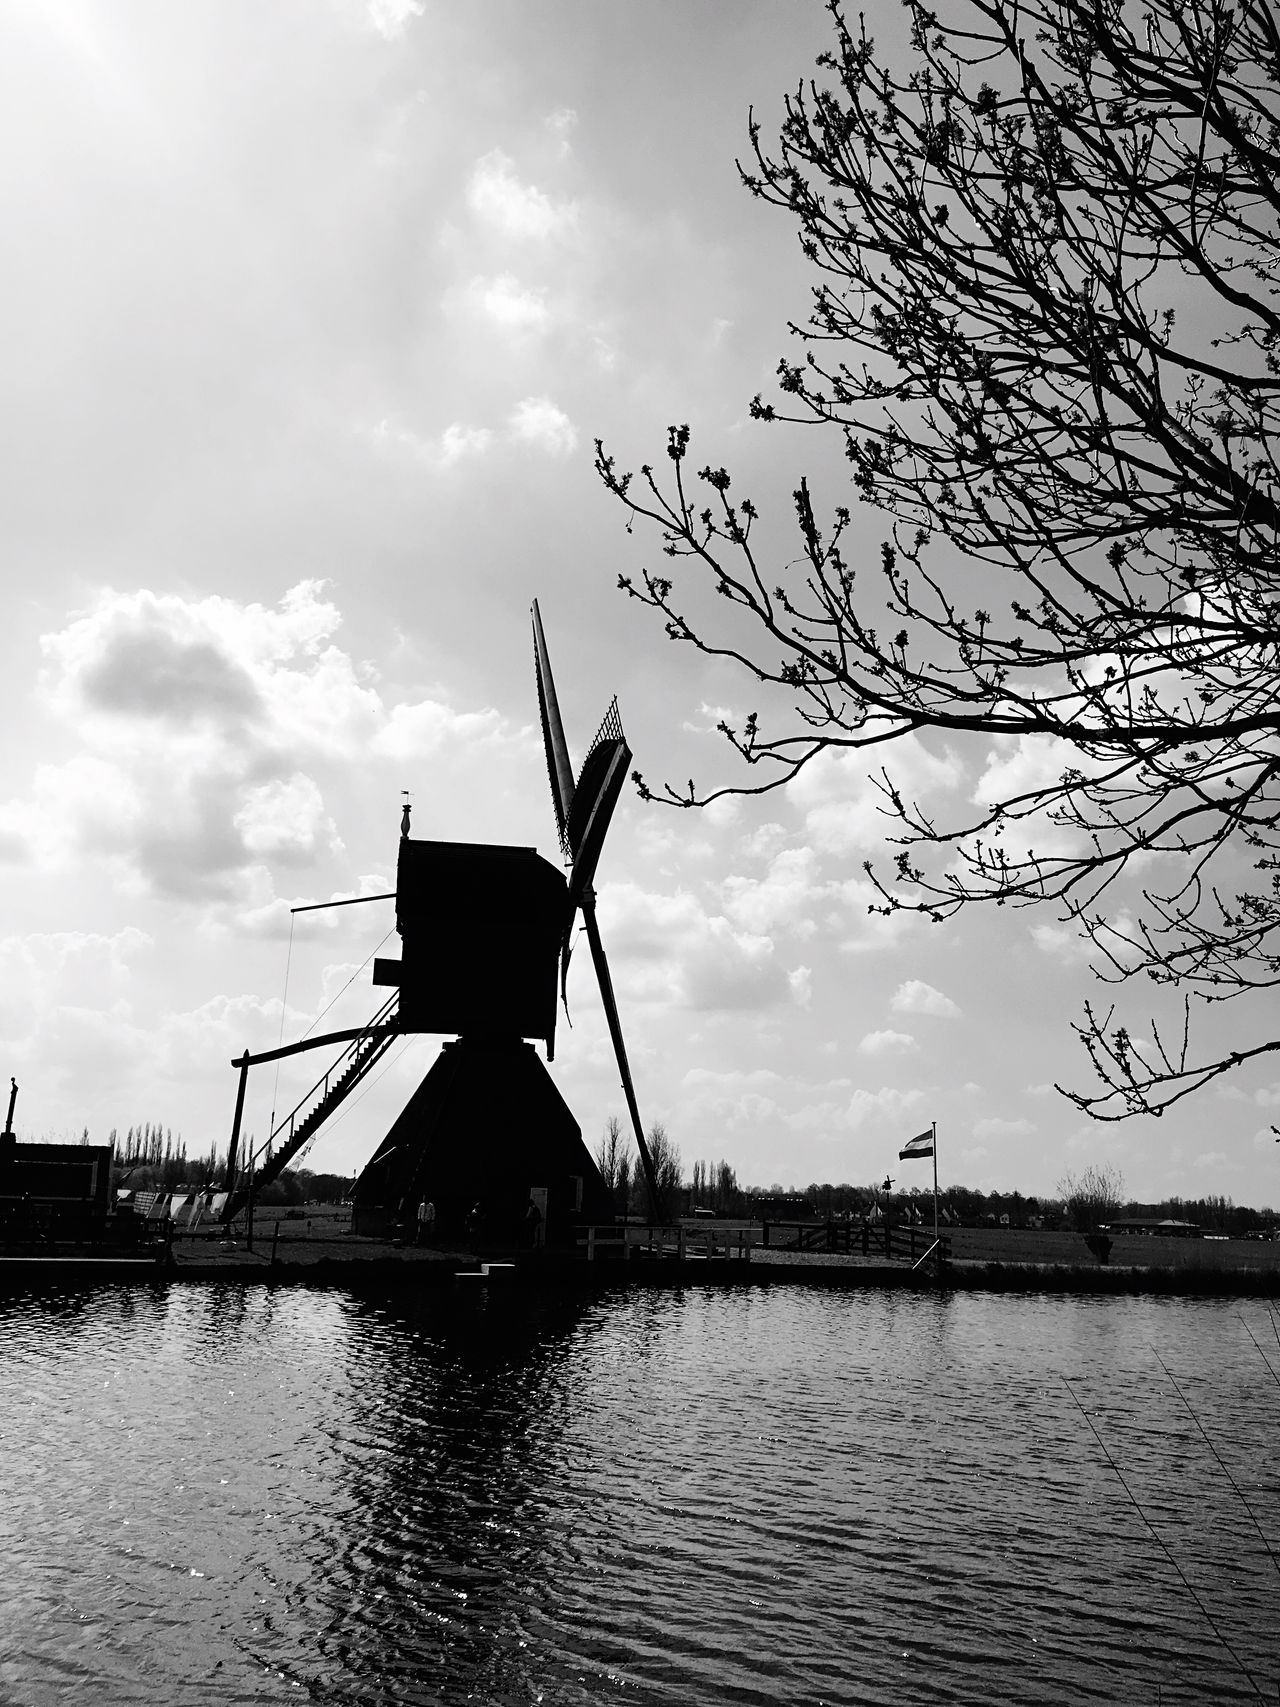 Sky Water Tree Cloud - Sky Built Structure Nature Outdoors Waterfront River Silhouette No People Windmill Architecture Wind Turbine Building Exterior Nautical Vessel Day Beauty In Nature Alternative Energy Welcome To Black